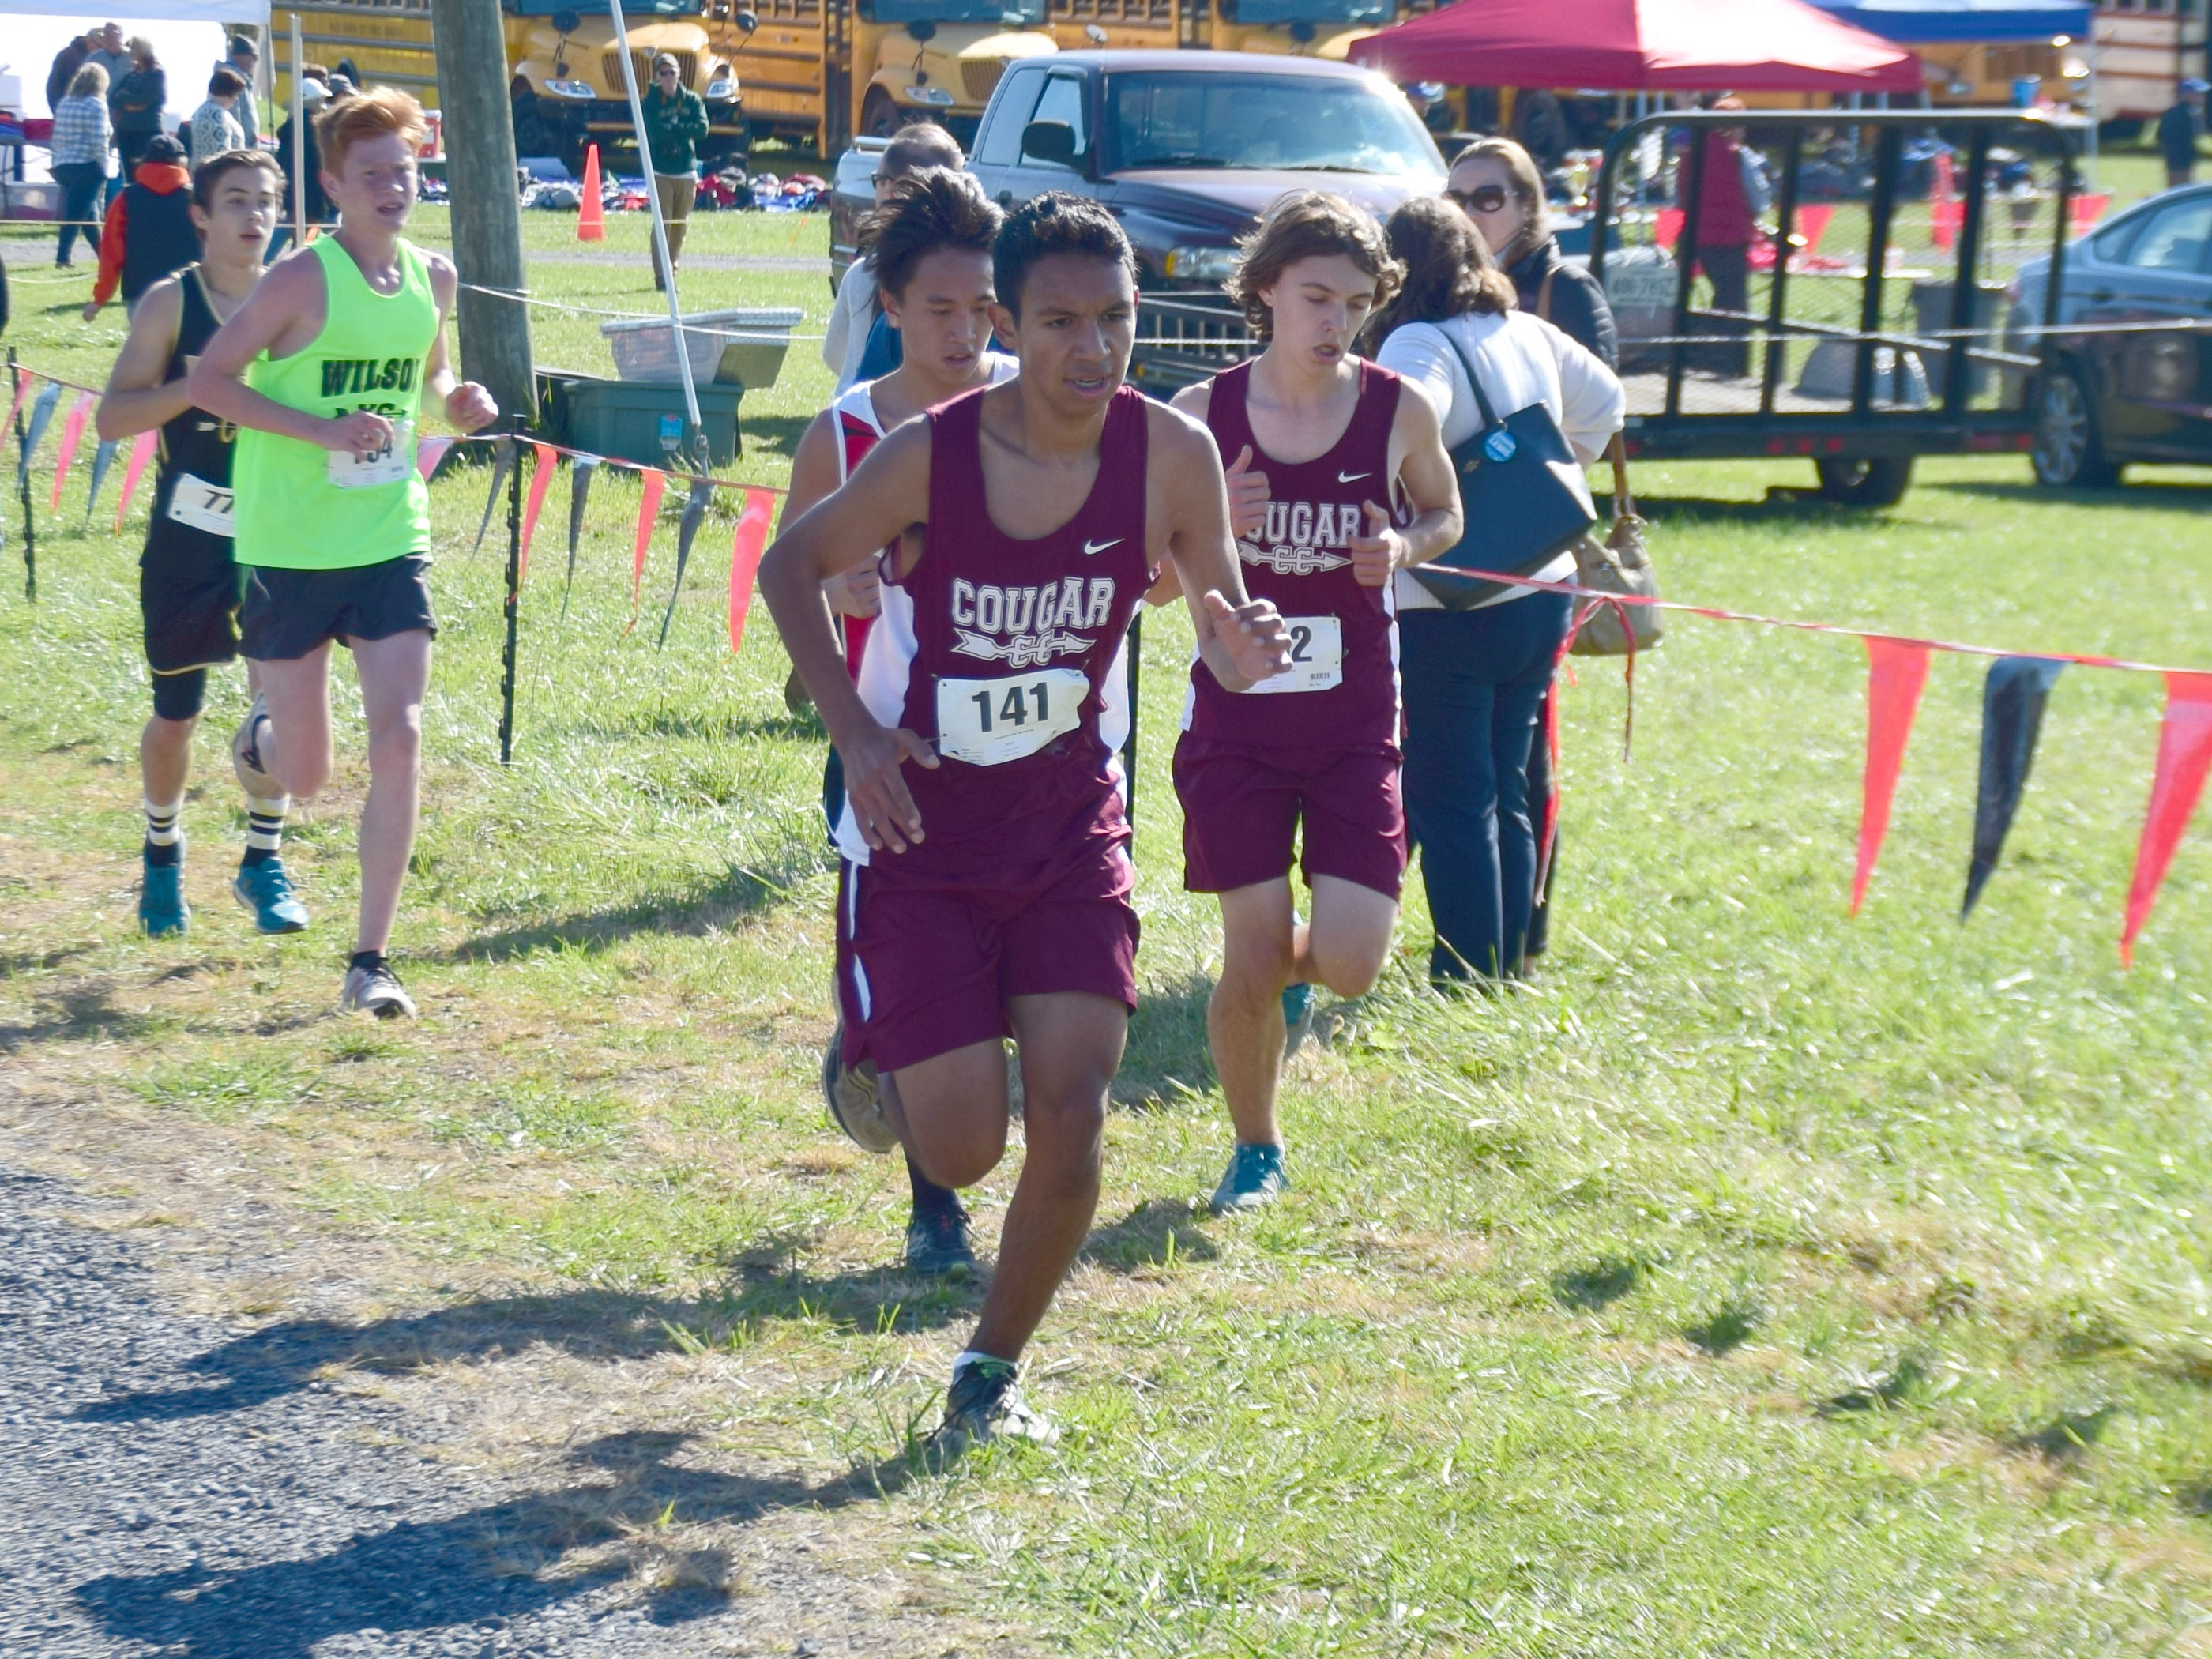 Stuarts Draft's Lukas Barrigan, center, and Alexander Callo, right, compete in the boys race at the VHSL Class 2, Region B Cross Country Championships on Tuesday, Oct. 30, 2018, at New Market Battlefield Park in New Market, Va.